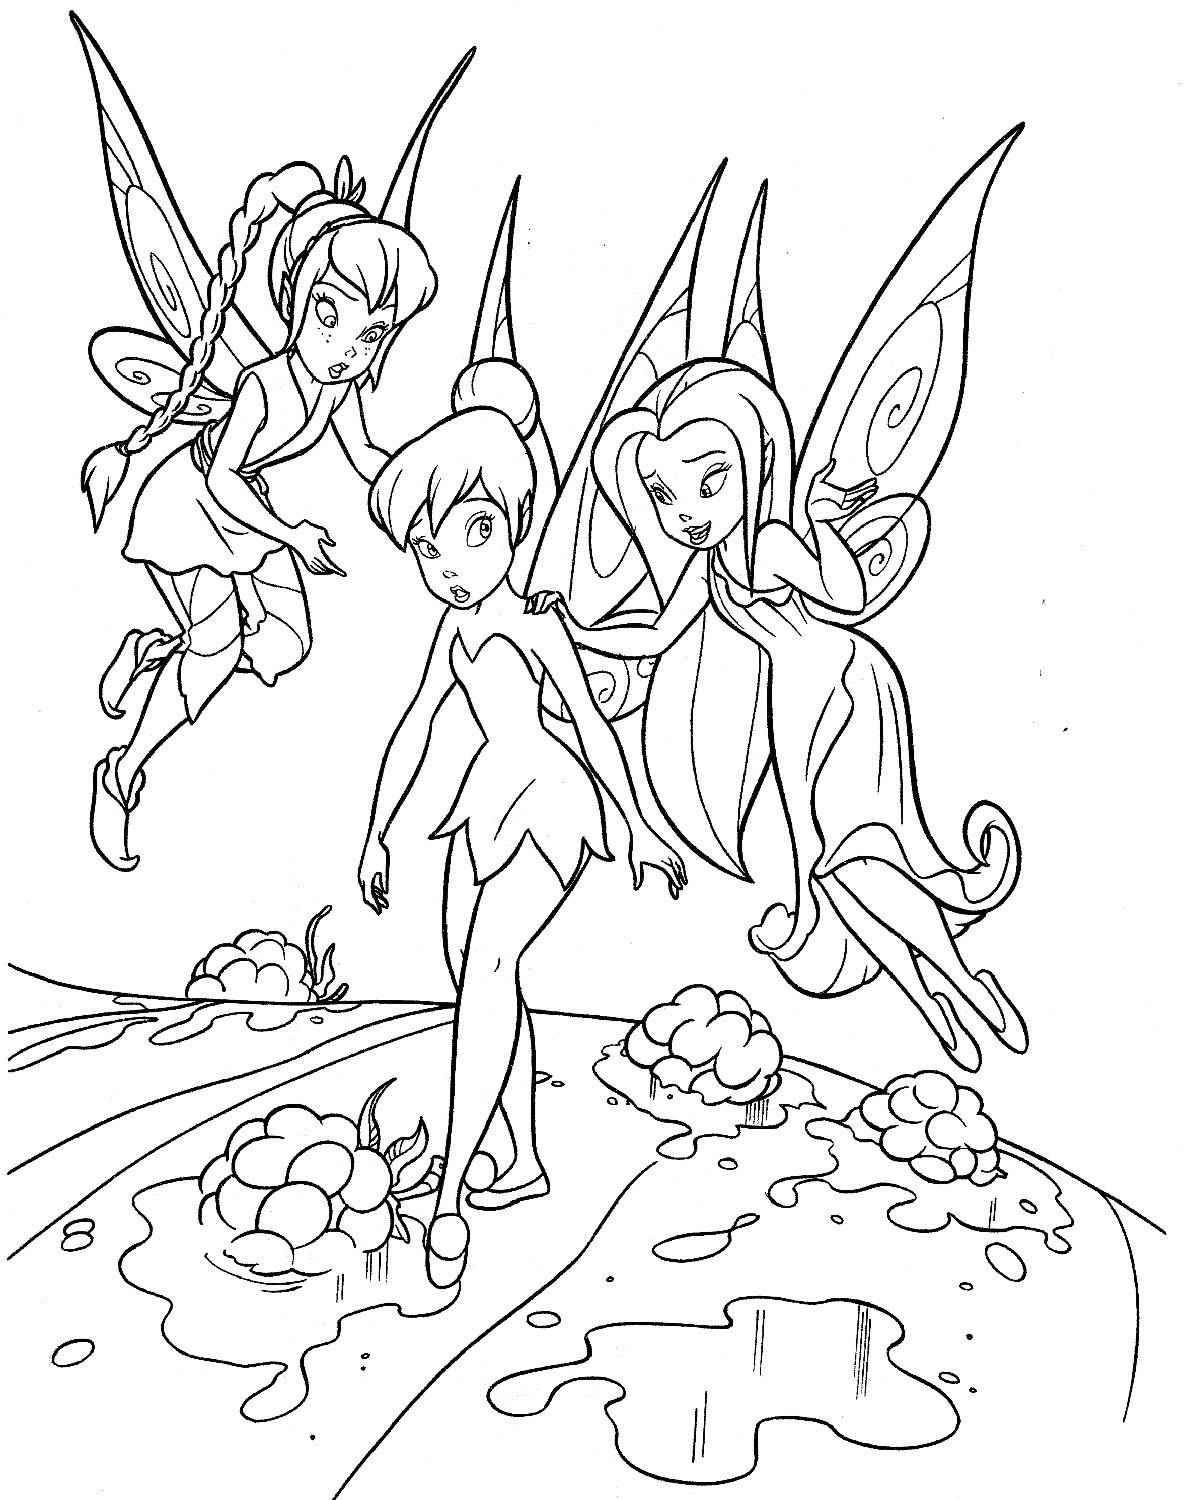 tinkerbell coloring pages kids - photo#20